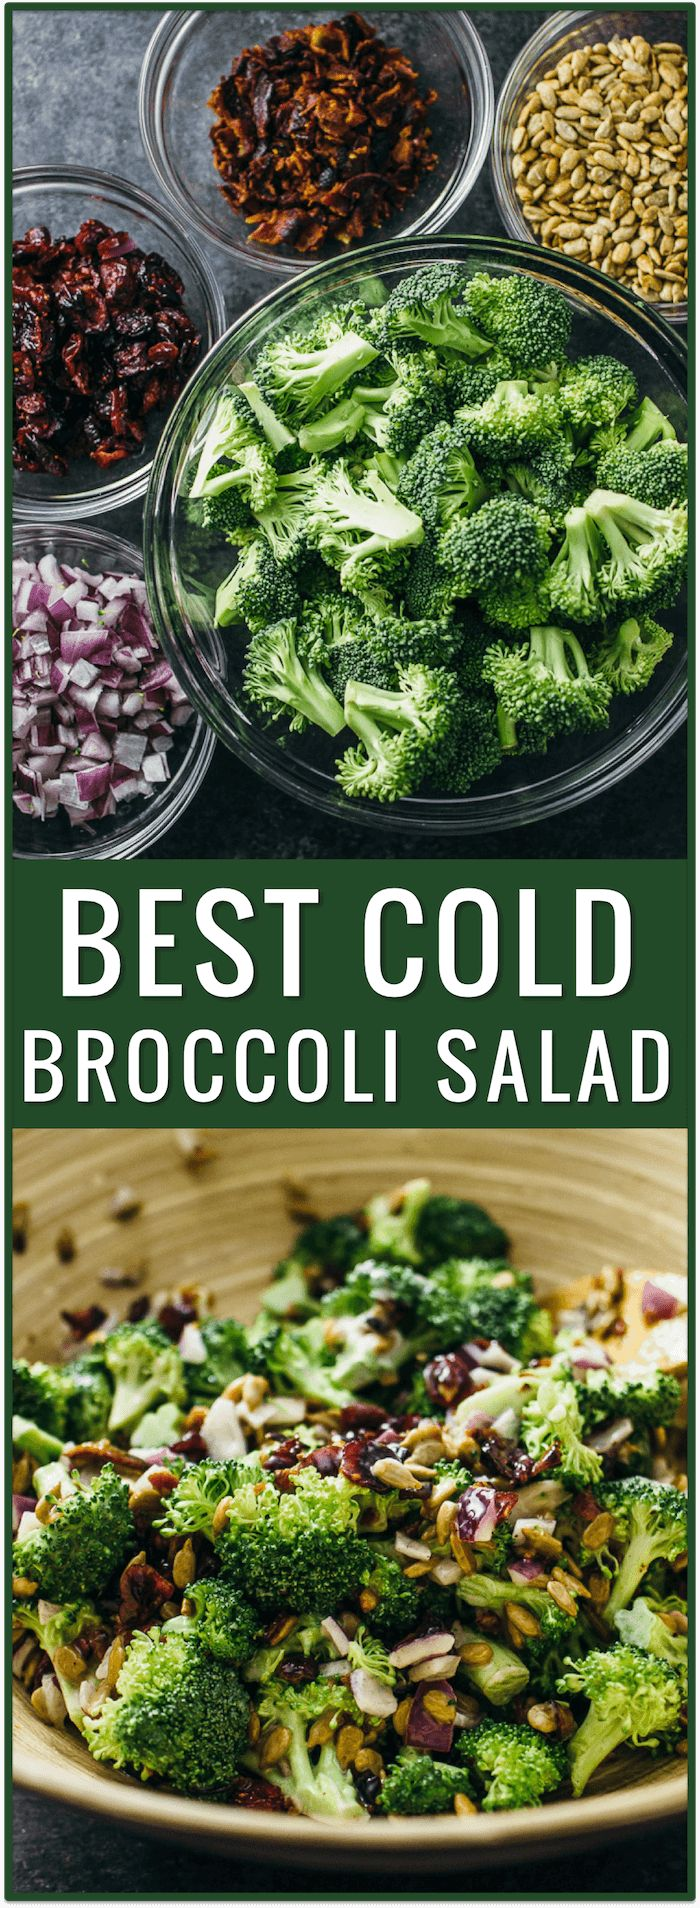 best cold broccoli salad with bacon and cranberries, raisins, healthy, easy, recipe, appetizer, side dish, simple, fast, dinner, lunch, snack, party, idea via @savory_tooth